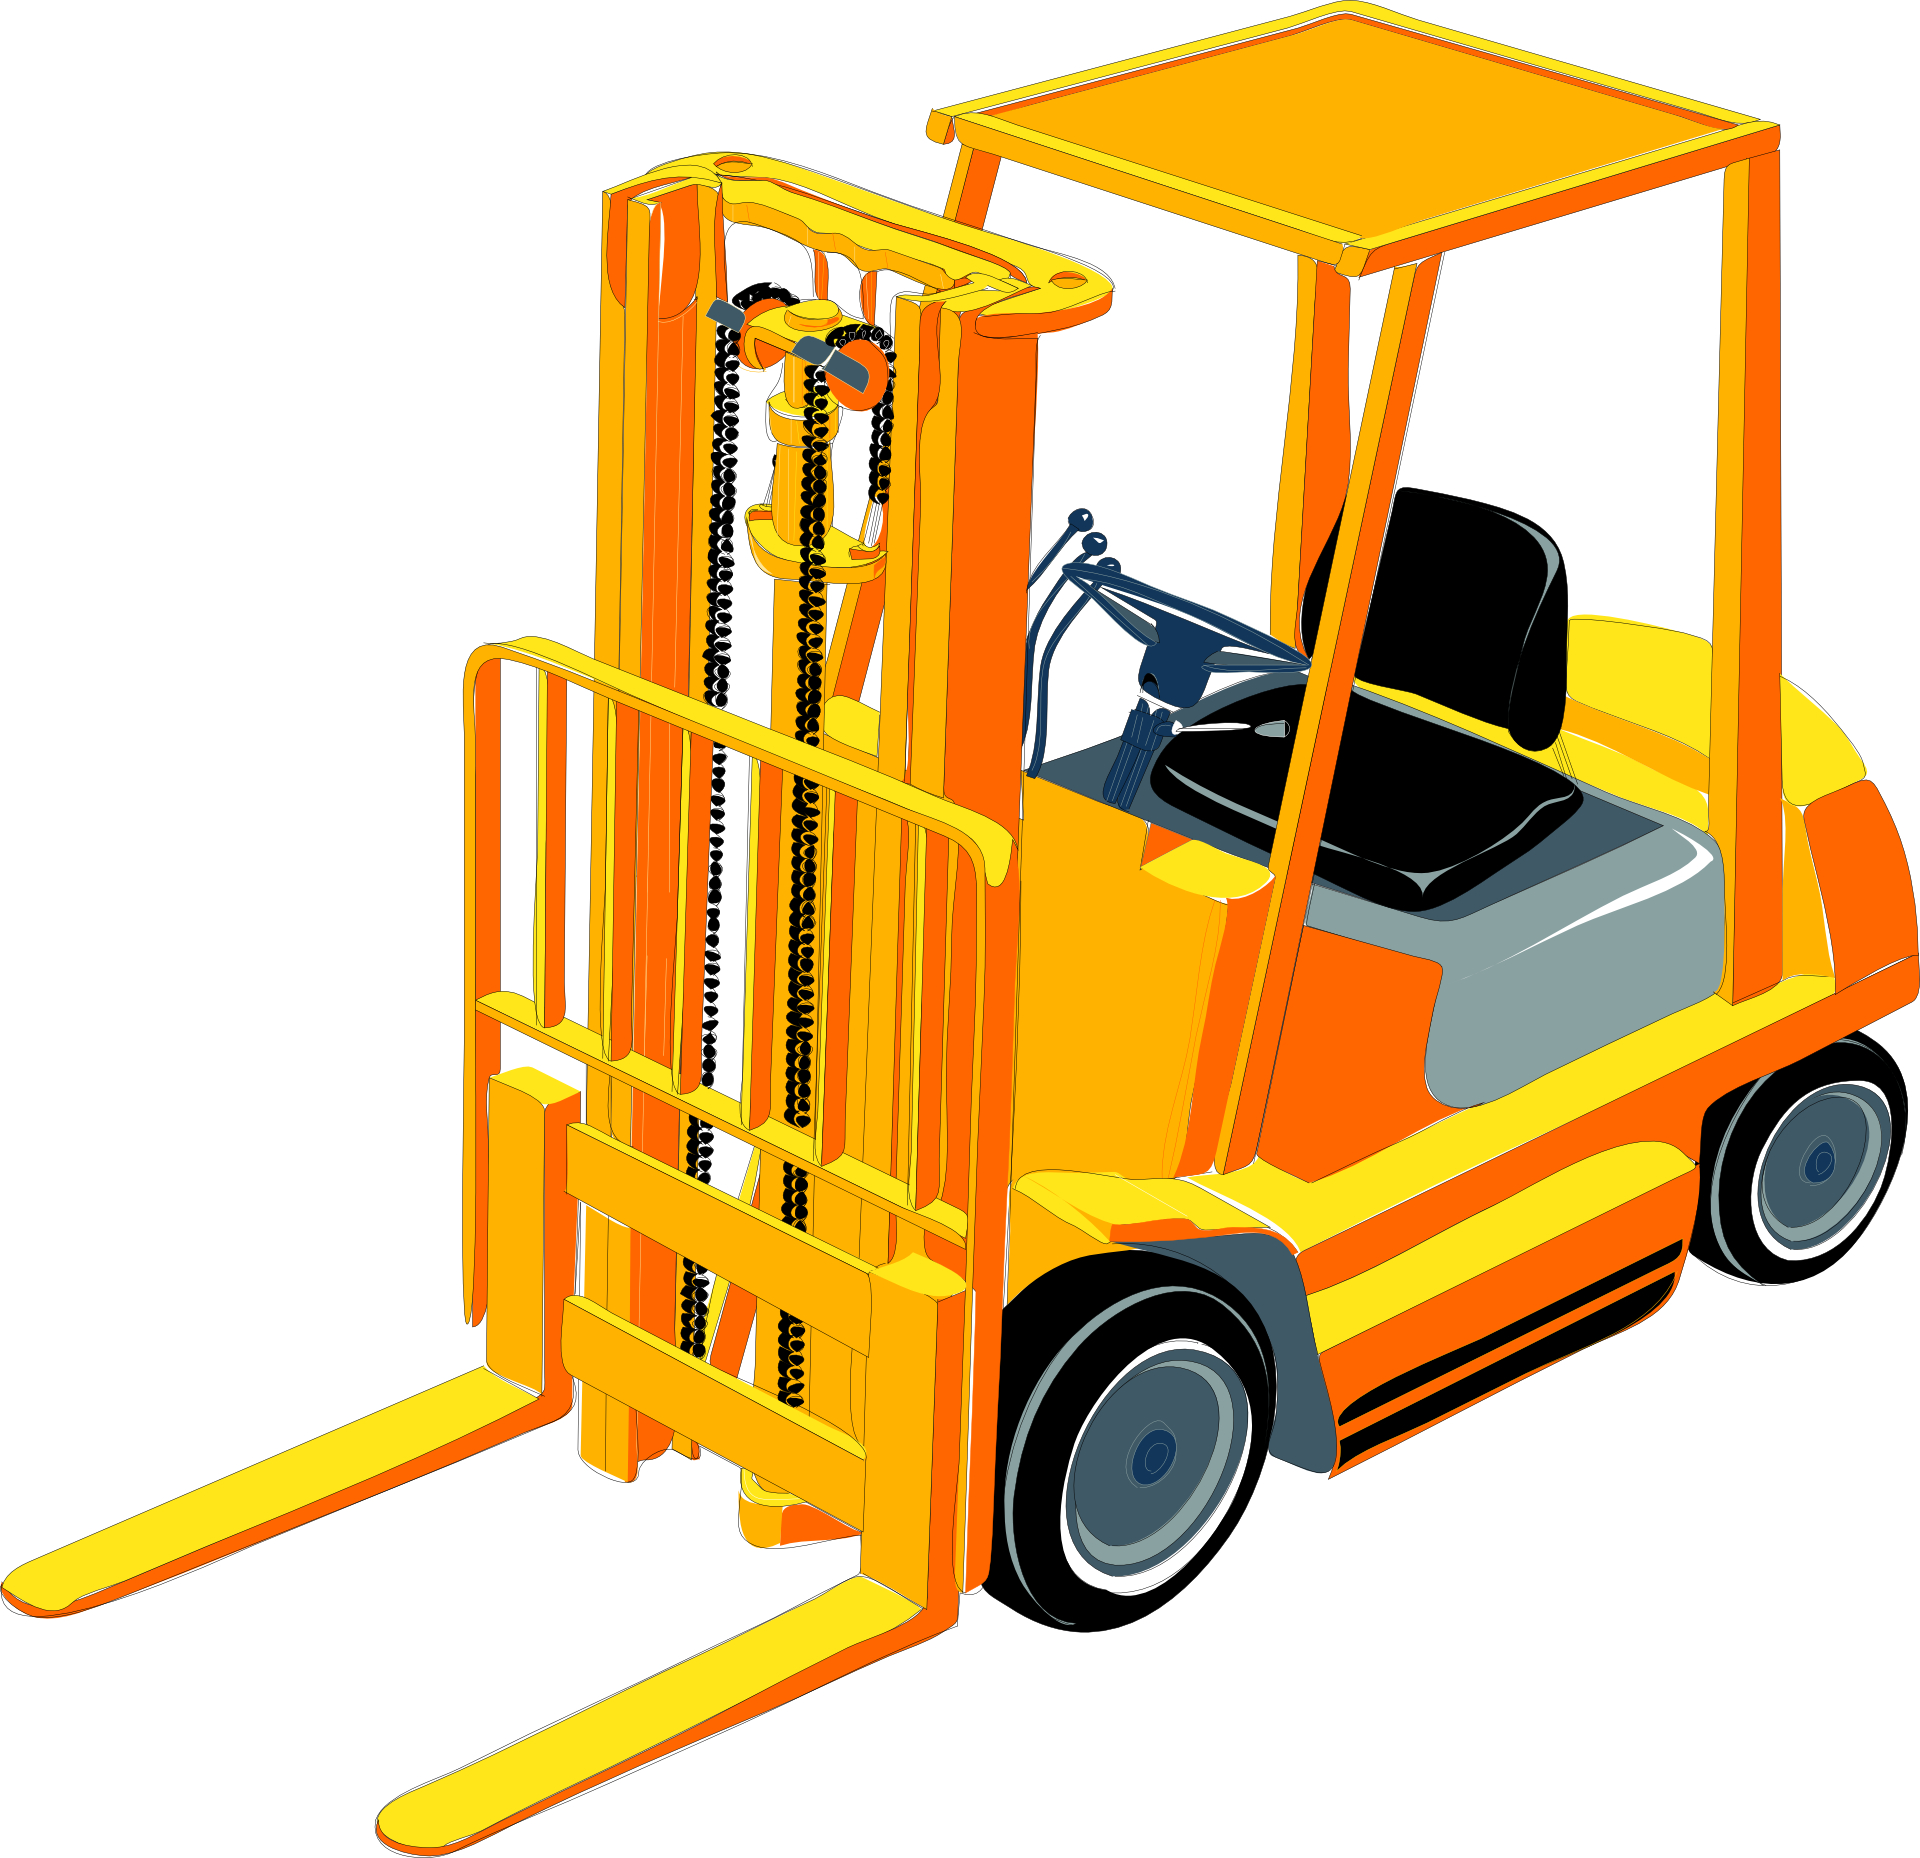 Forklift truck vector-Construction Machinery